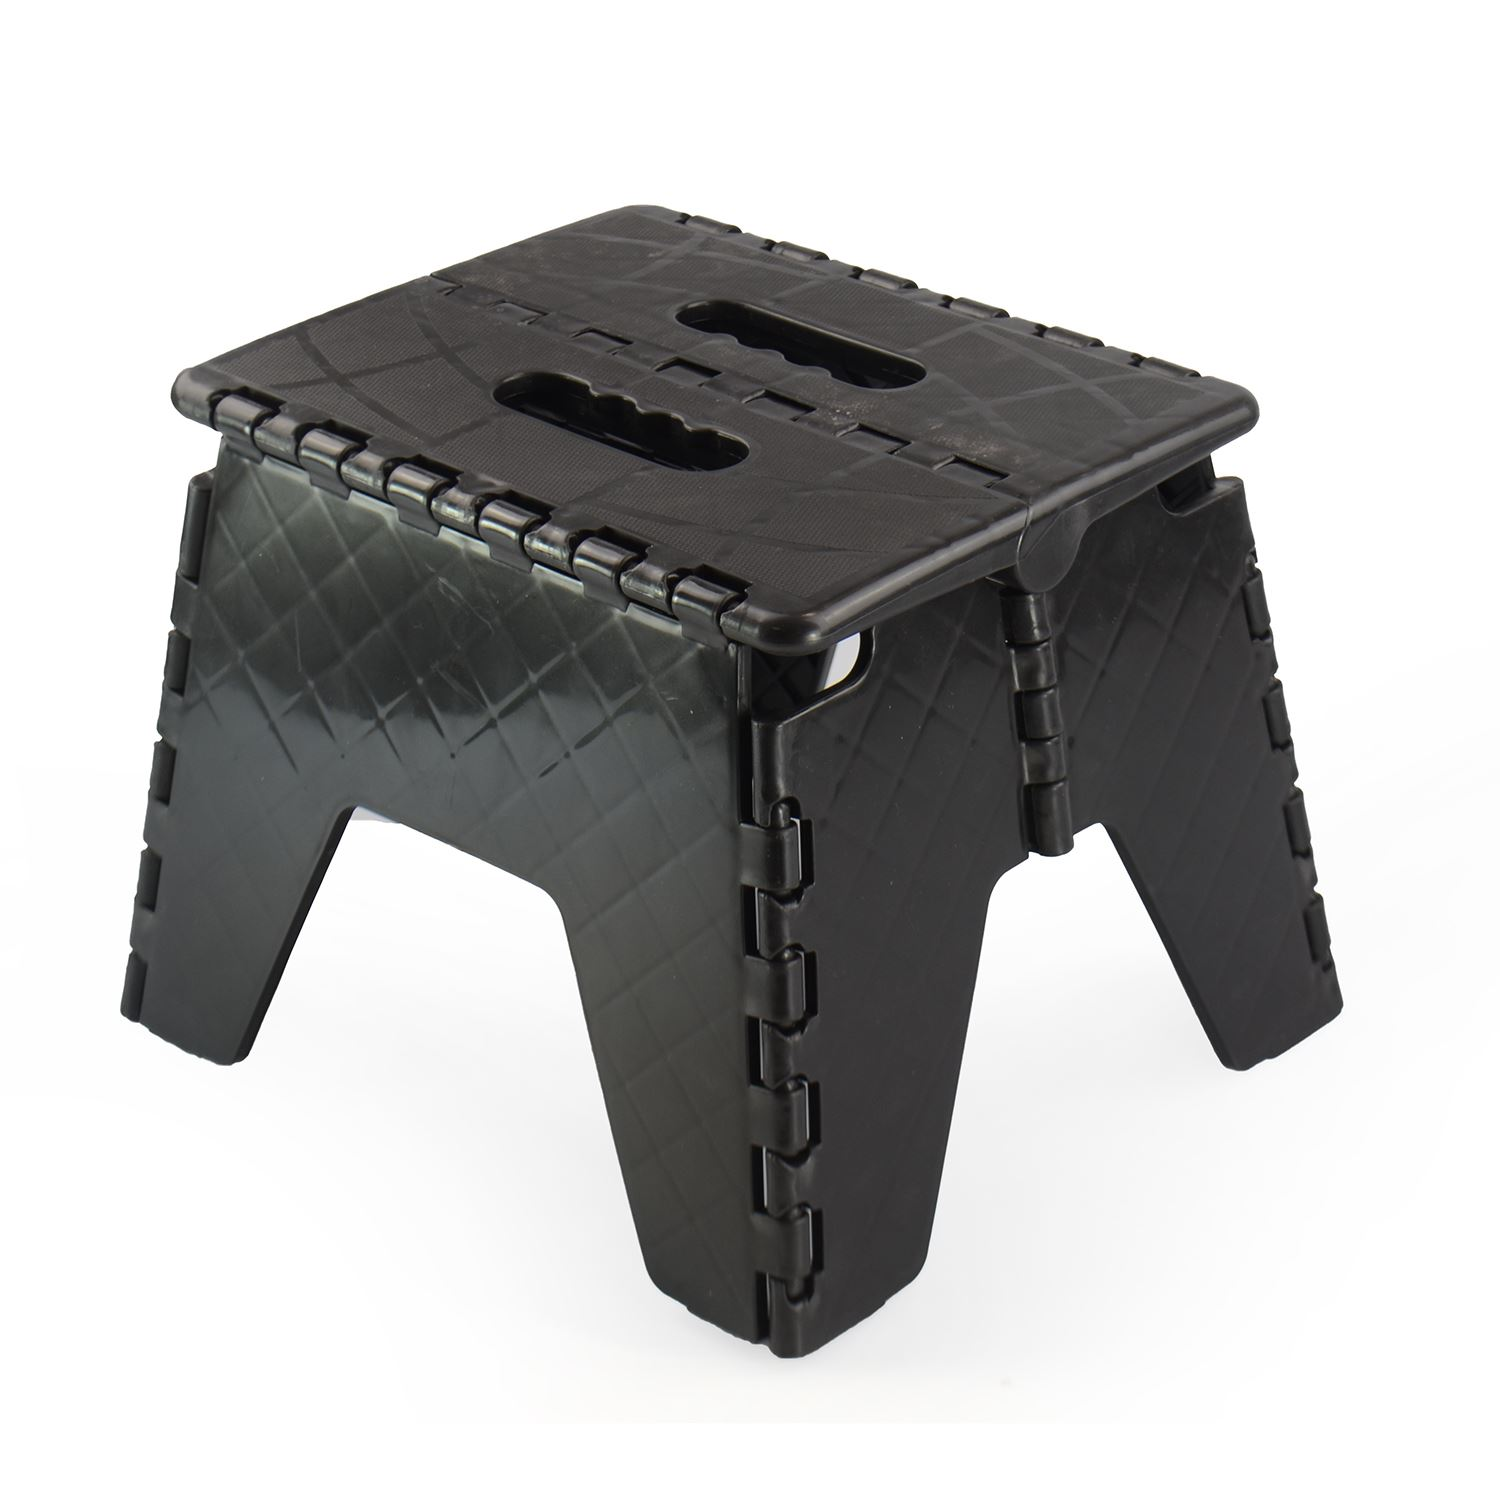 New Plastic Multi Purpose Folding Step Stool Home Kitchen ...